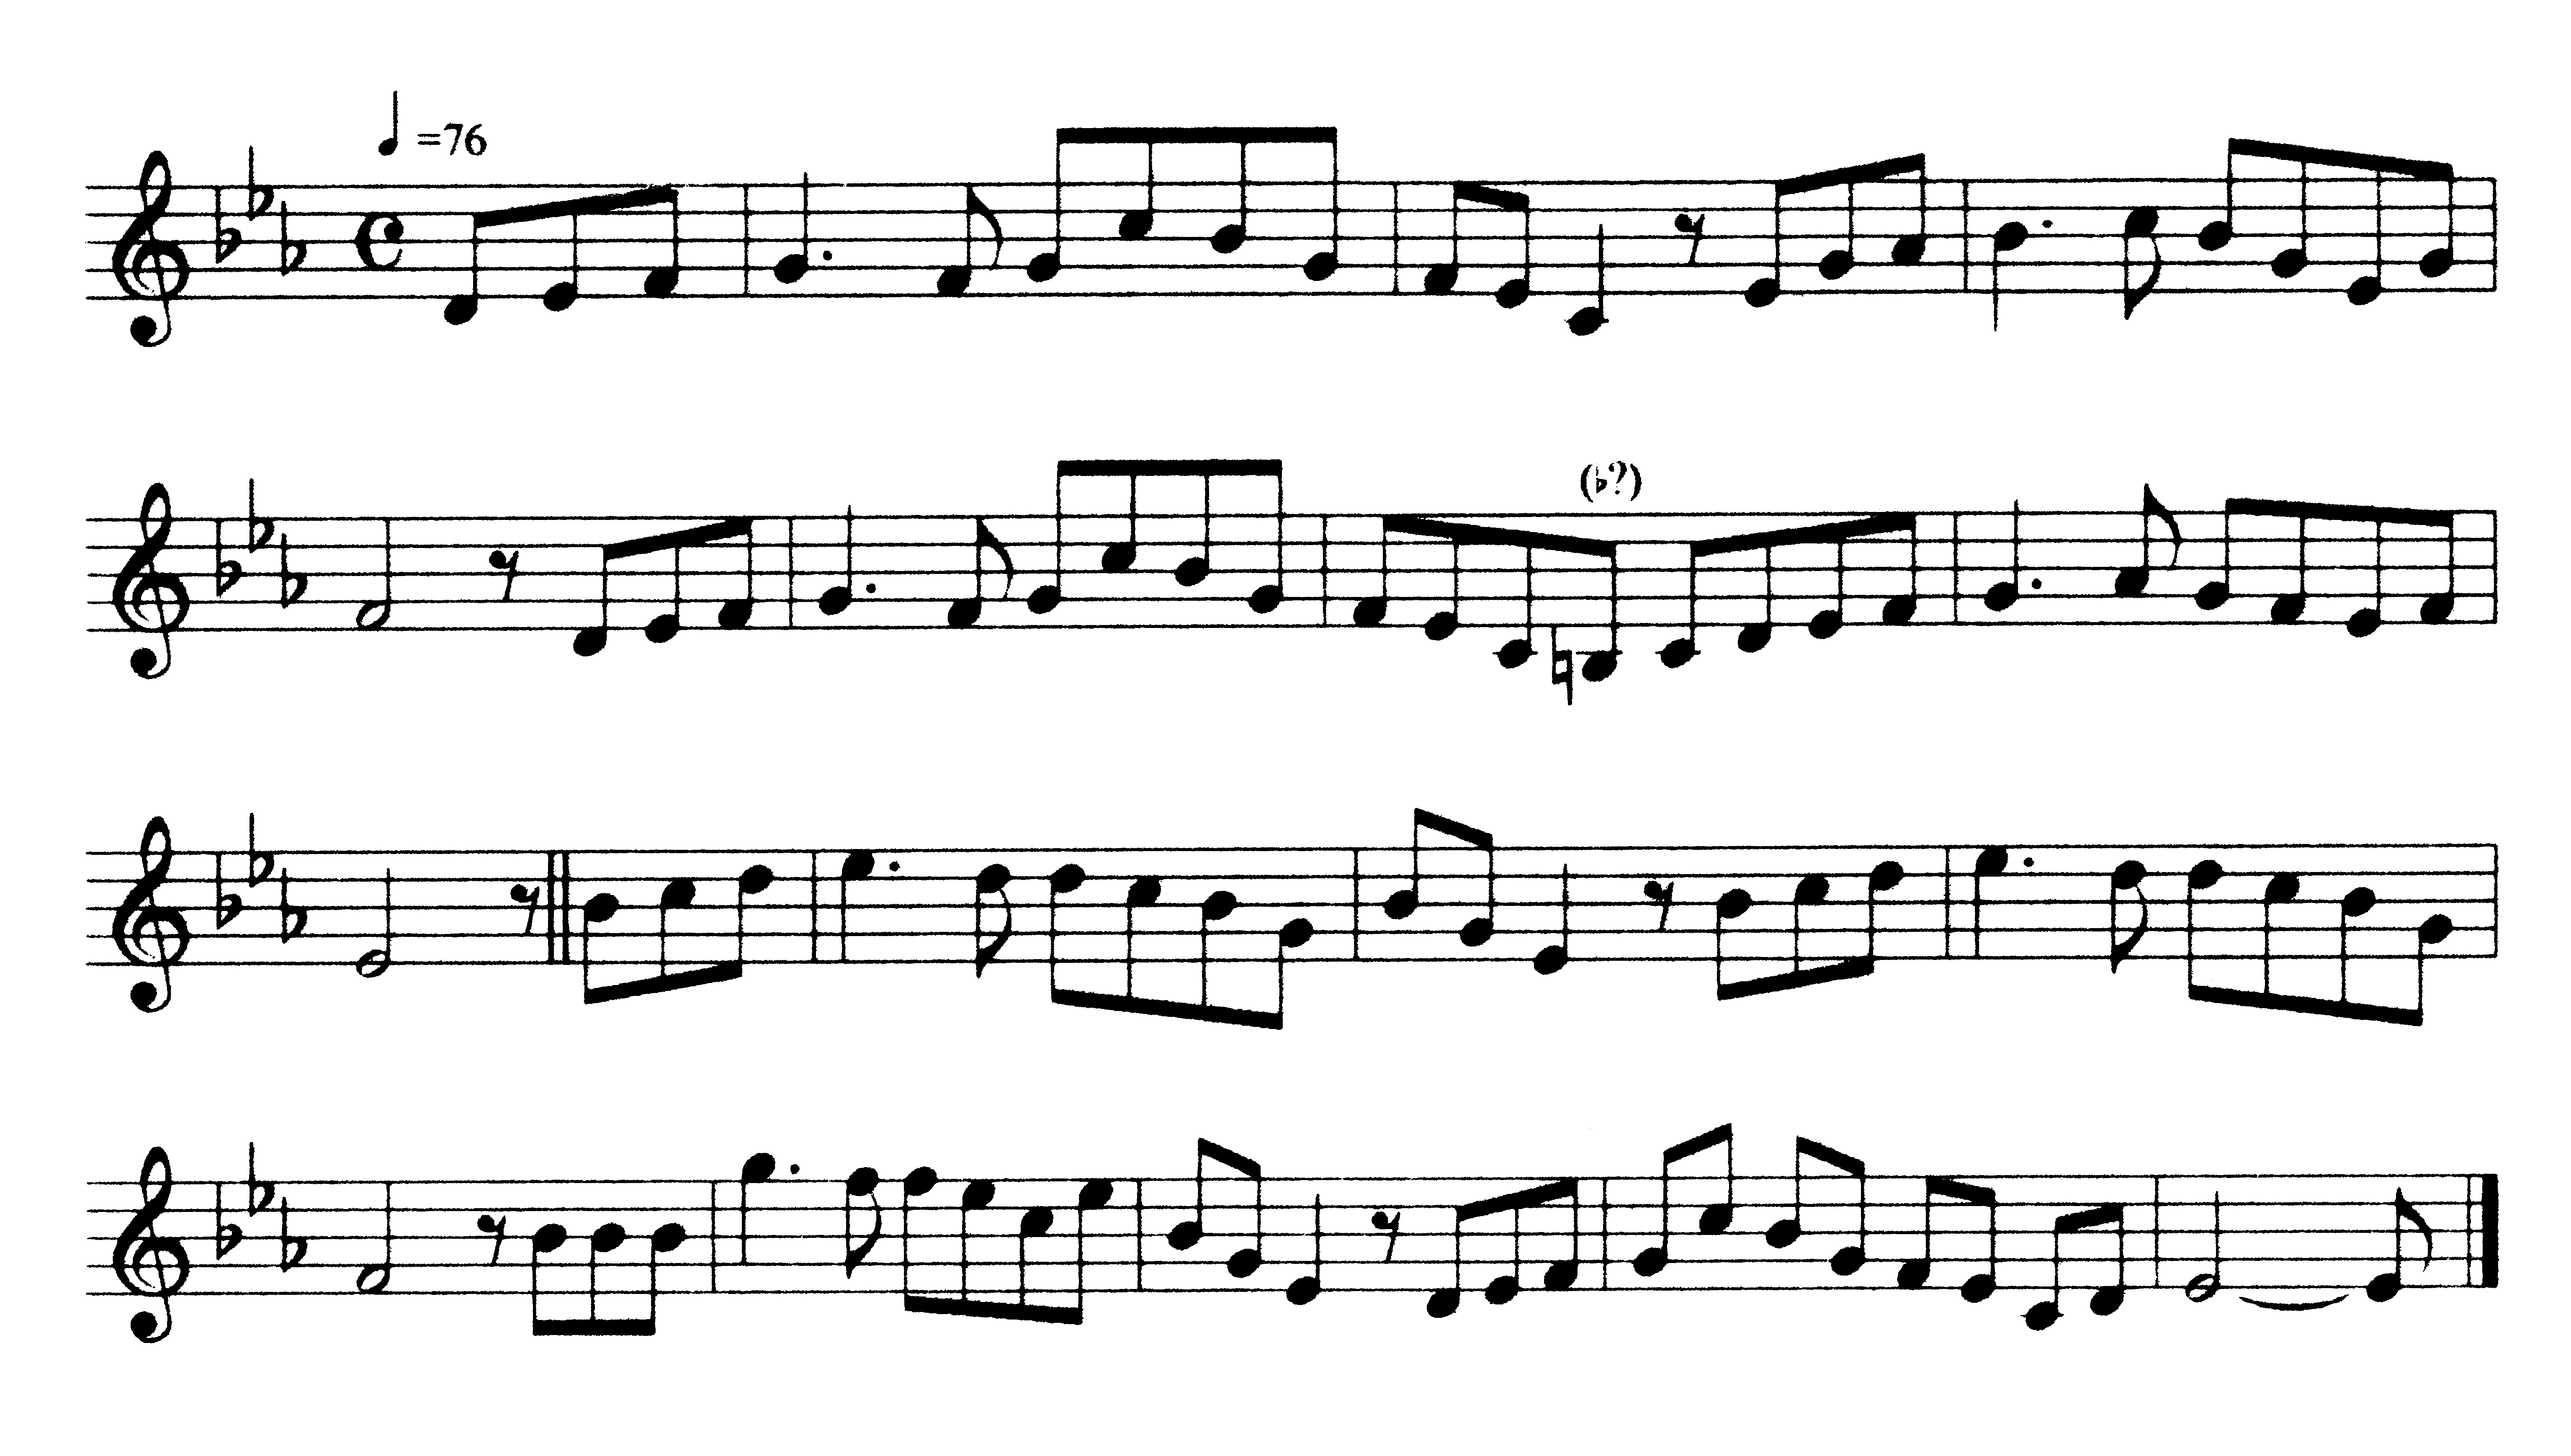 "Figure 1. The unknown song that became ""A Londonderry Air"" and ""Danny Boy."" From David Cooper, ed., The Petrie Collection of the Ancient Music of Ireland (Cork: Cork University Press, 2002 [1855]), 94. Reproduced with kind permission of the author and Cork University Press.: Note that the transcription reproduced here is not an actual musical text, but the representation of a musical text: a description of a cultural act and not the act itself. Just as published collections of Ireland's Gaelic poetry were translated into English—since its intended readers, the English-speaking intelligentsia, were unfamiliar with the lingua franca—musical texts were ""translated"" into a form suited to the mainly urban, amateur musicians who performed them on piano and violin. These transcriptions were not used by those whose singing or instrumental playing they describe, for the popular musical tradition was an oral one."